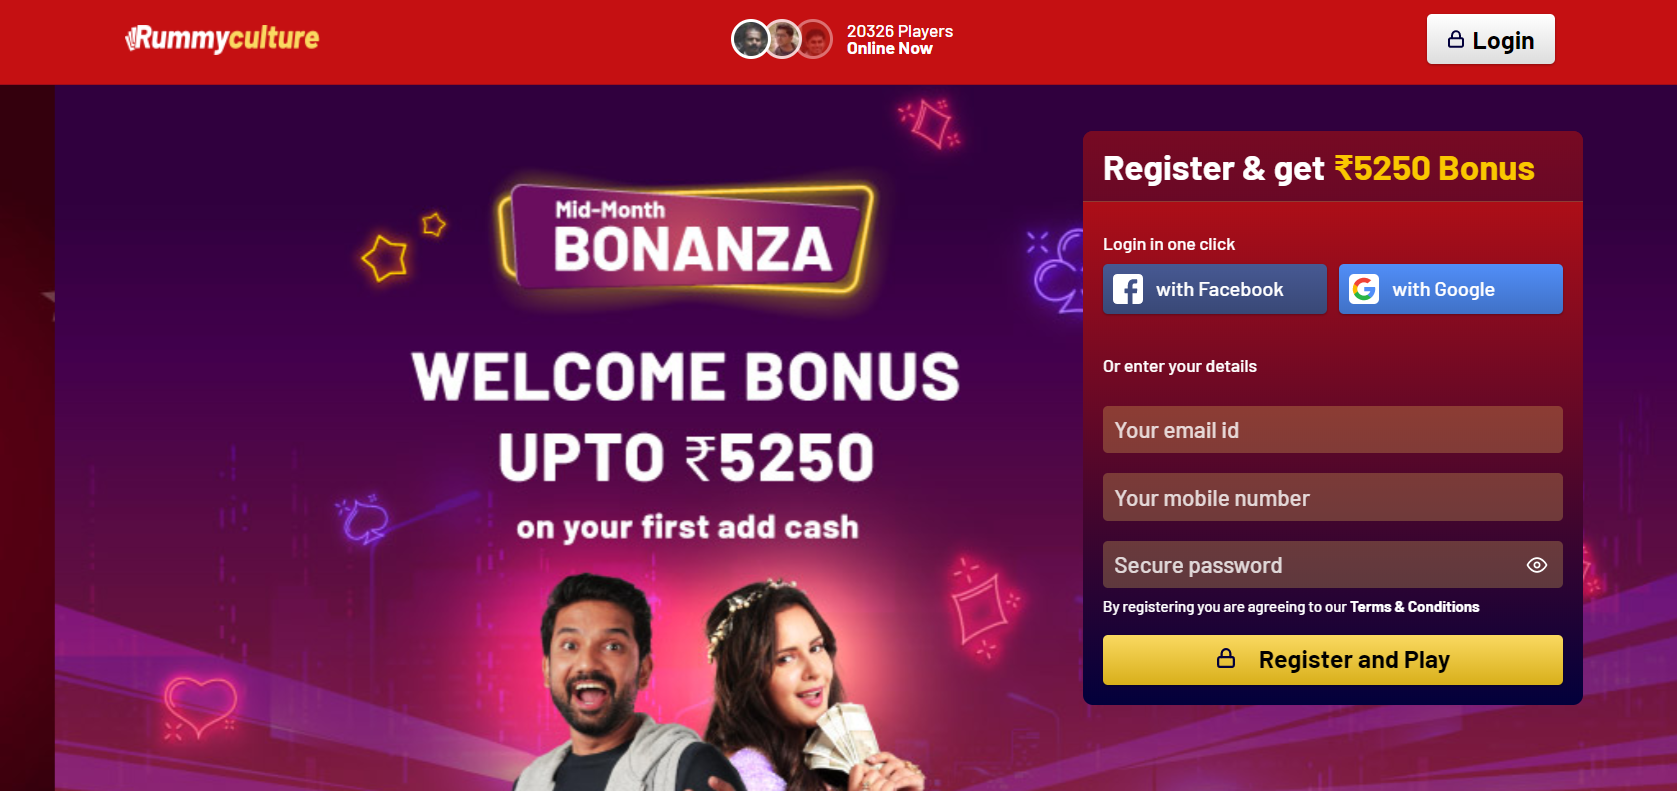 How to register to play rummy online